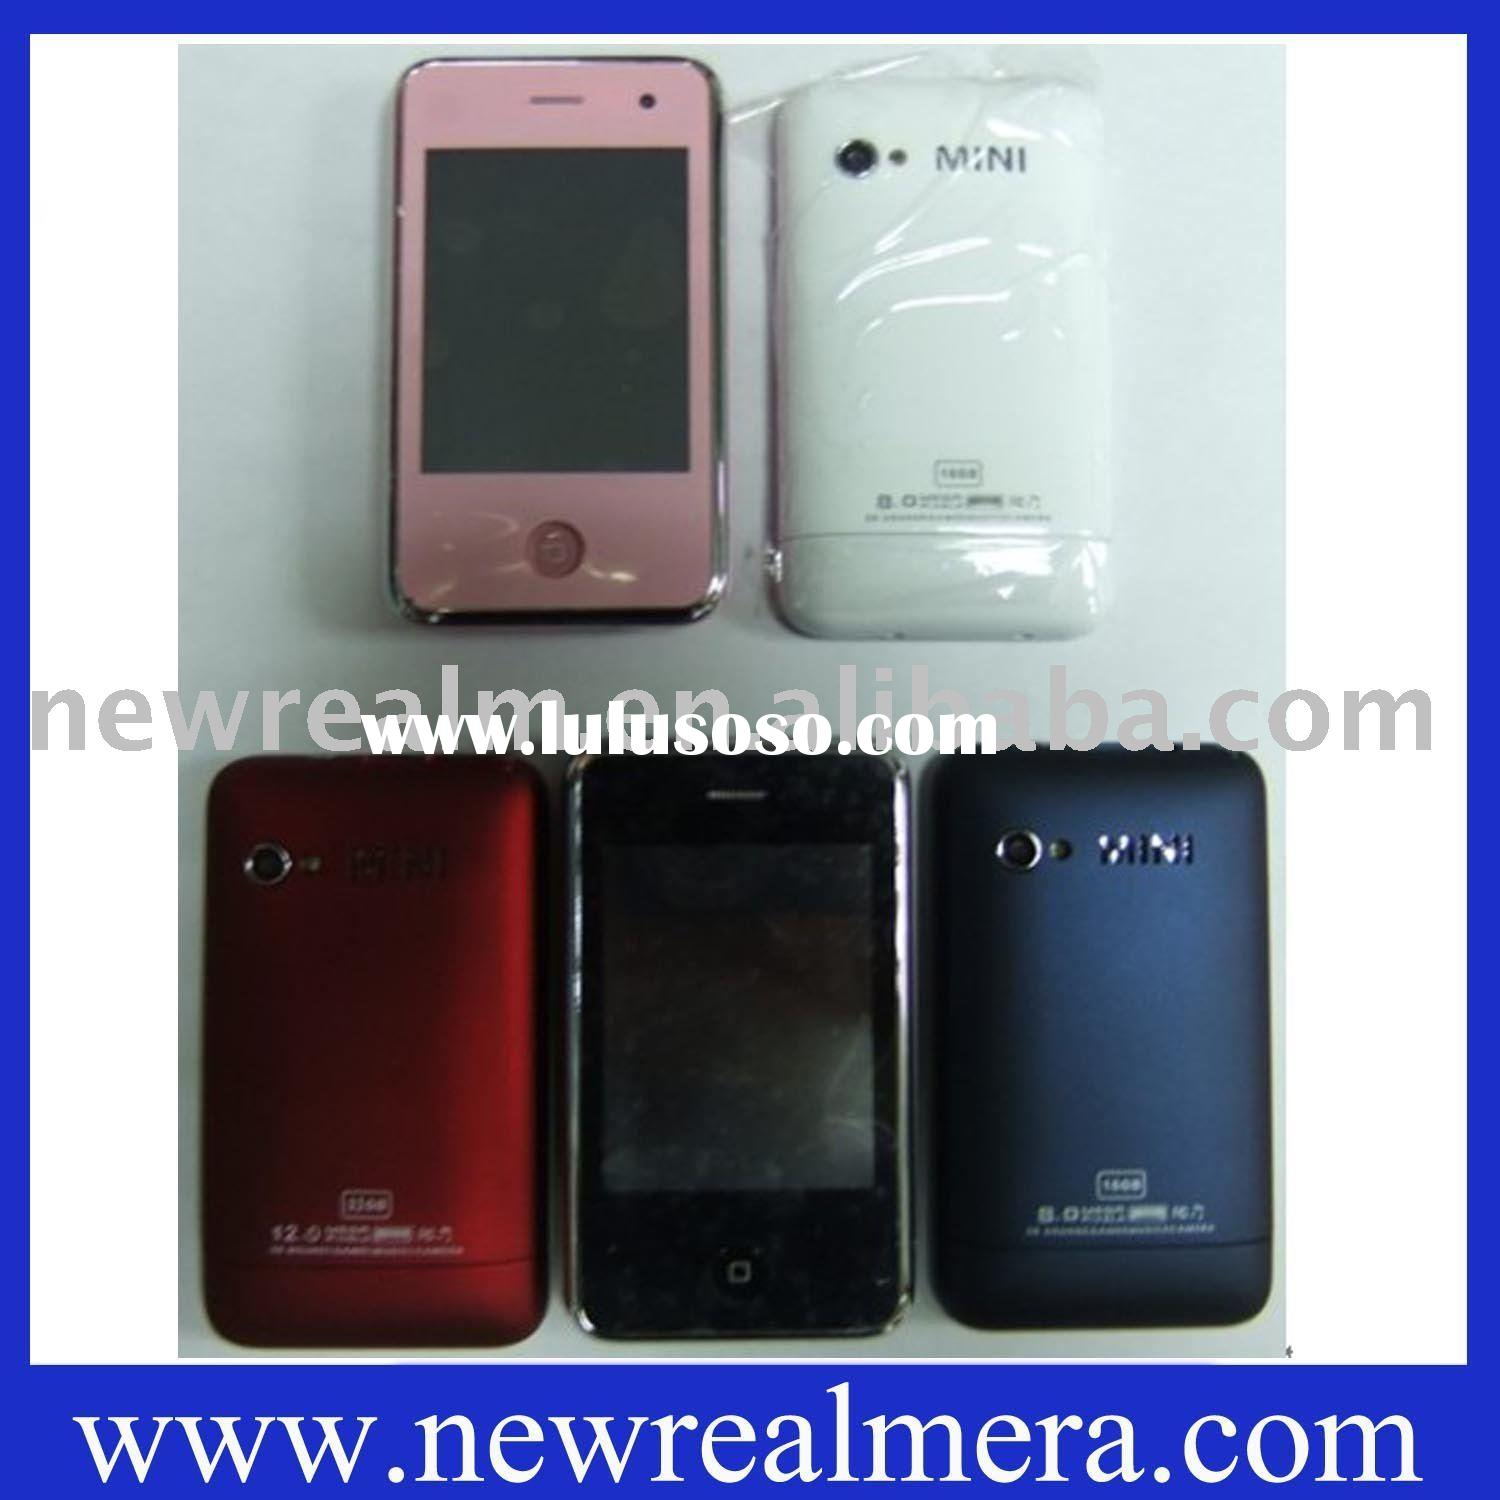 Mini N8i gsm mobile phone dual sim +TV+JAVA +quadband